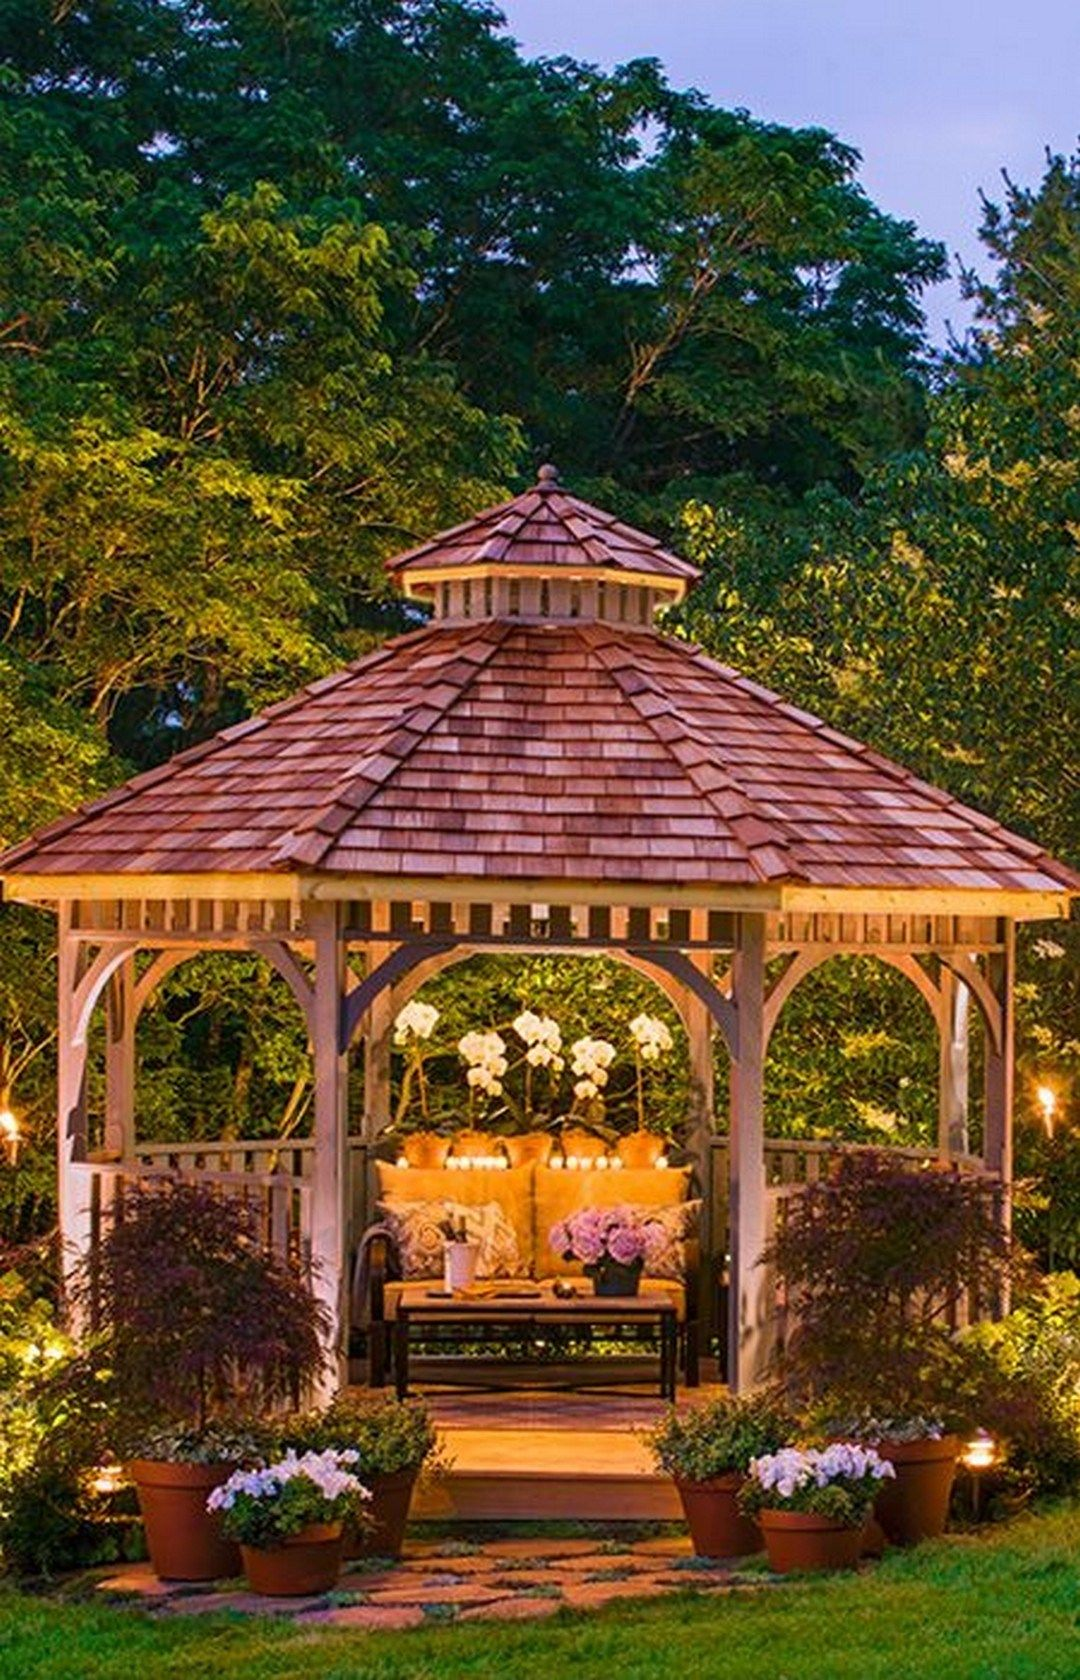 Gazebo Decorating To Make Your Backyard Awesome (1 in 2020 ...